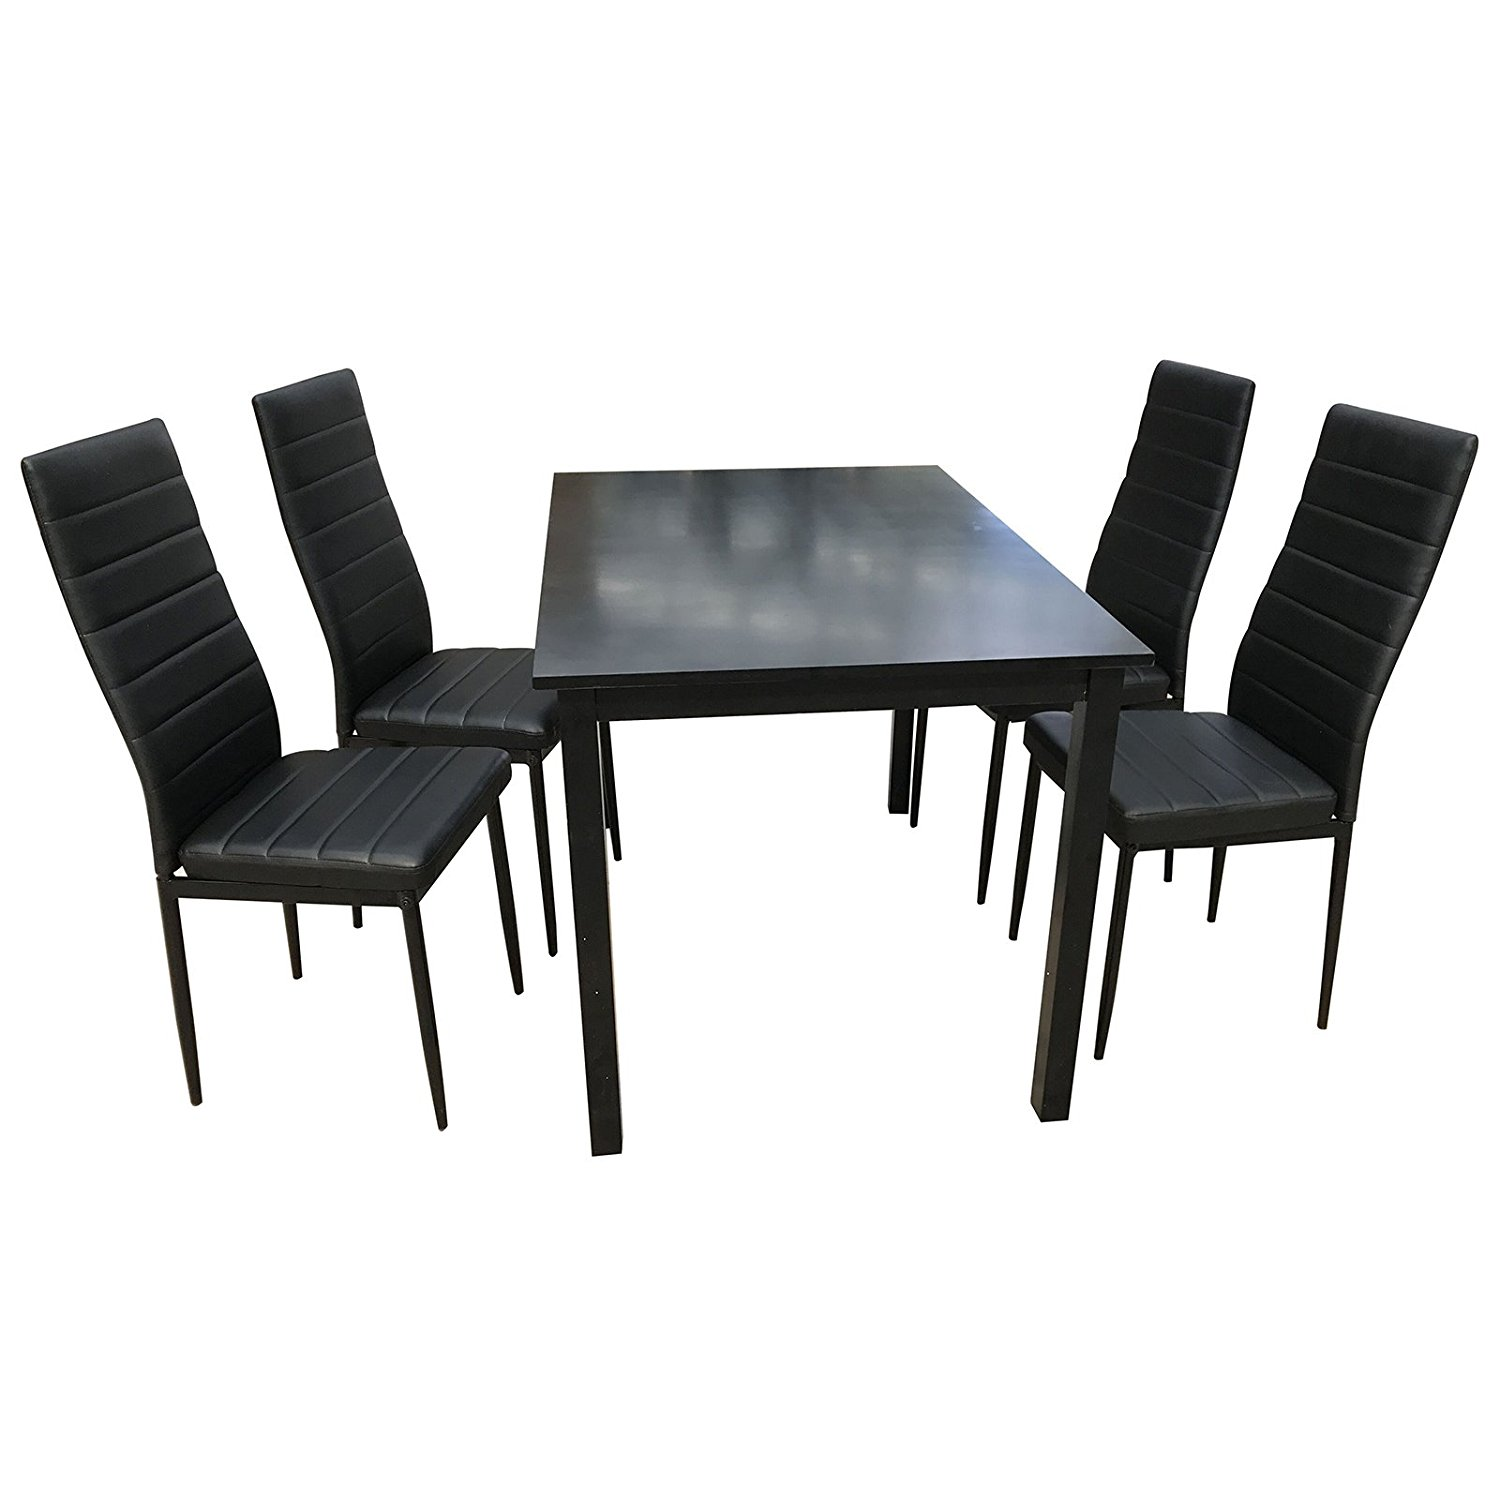 Uenjoy 5 Piece Wood Dining Table Set 4 PU Chairs Kitchen Room Breakfast Furniture Black